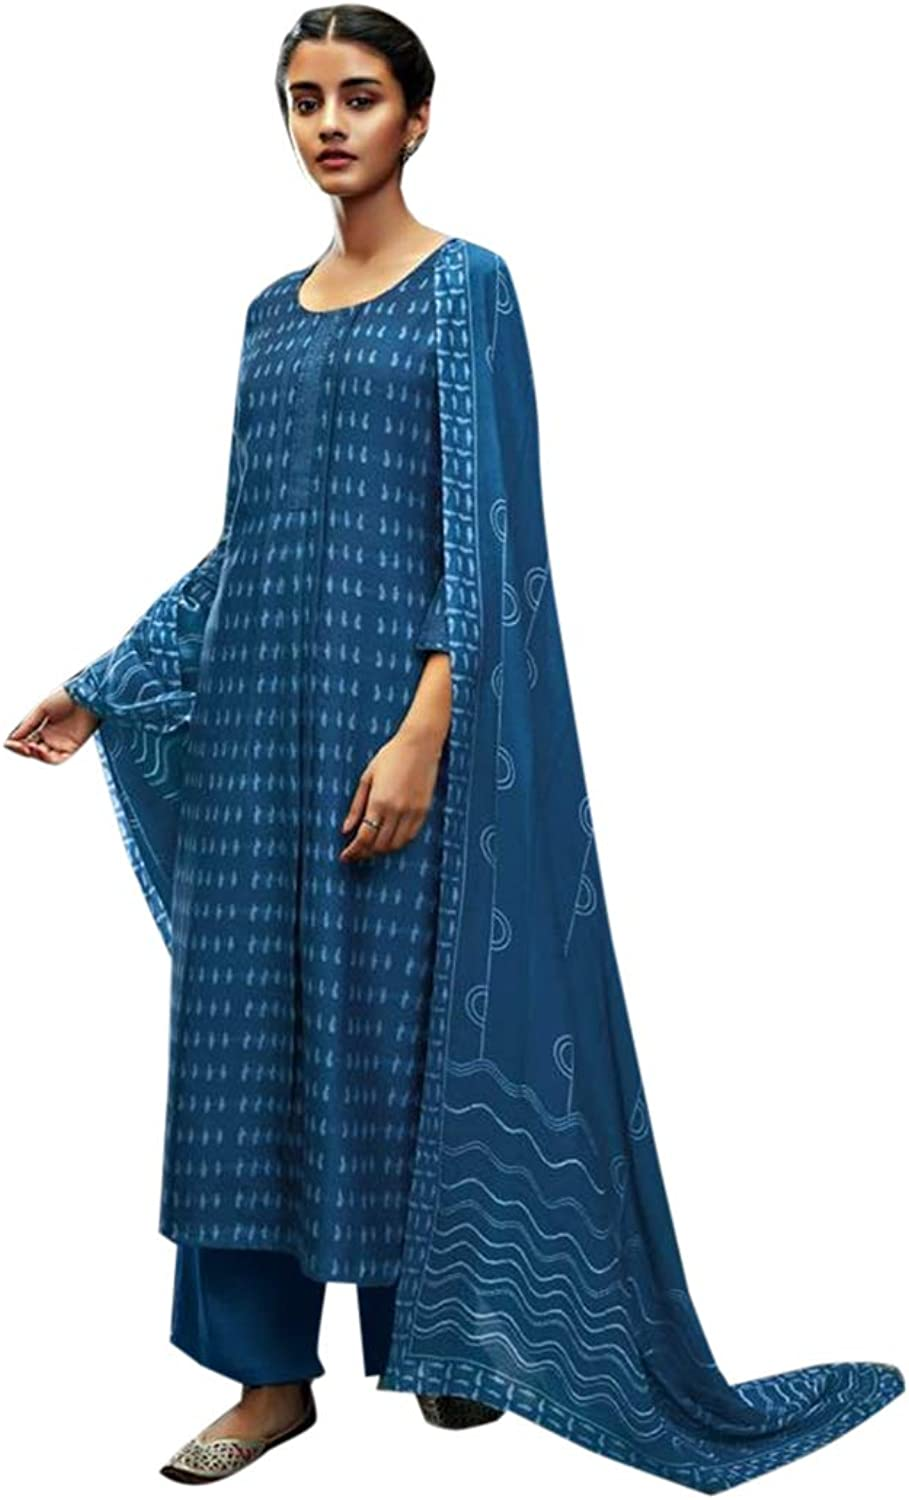 bluee Designer Pure Silk Straight Salwar suit with Printed Dupatta for Women Indian Formal Party wear 7703